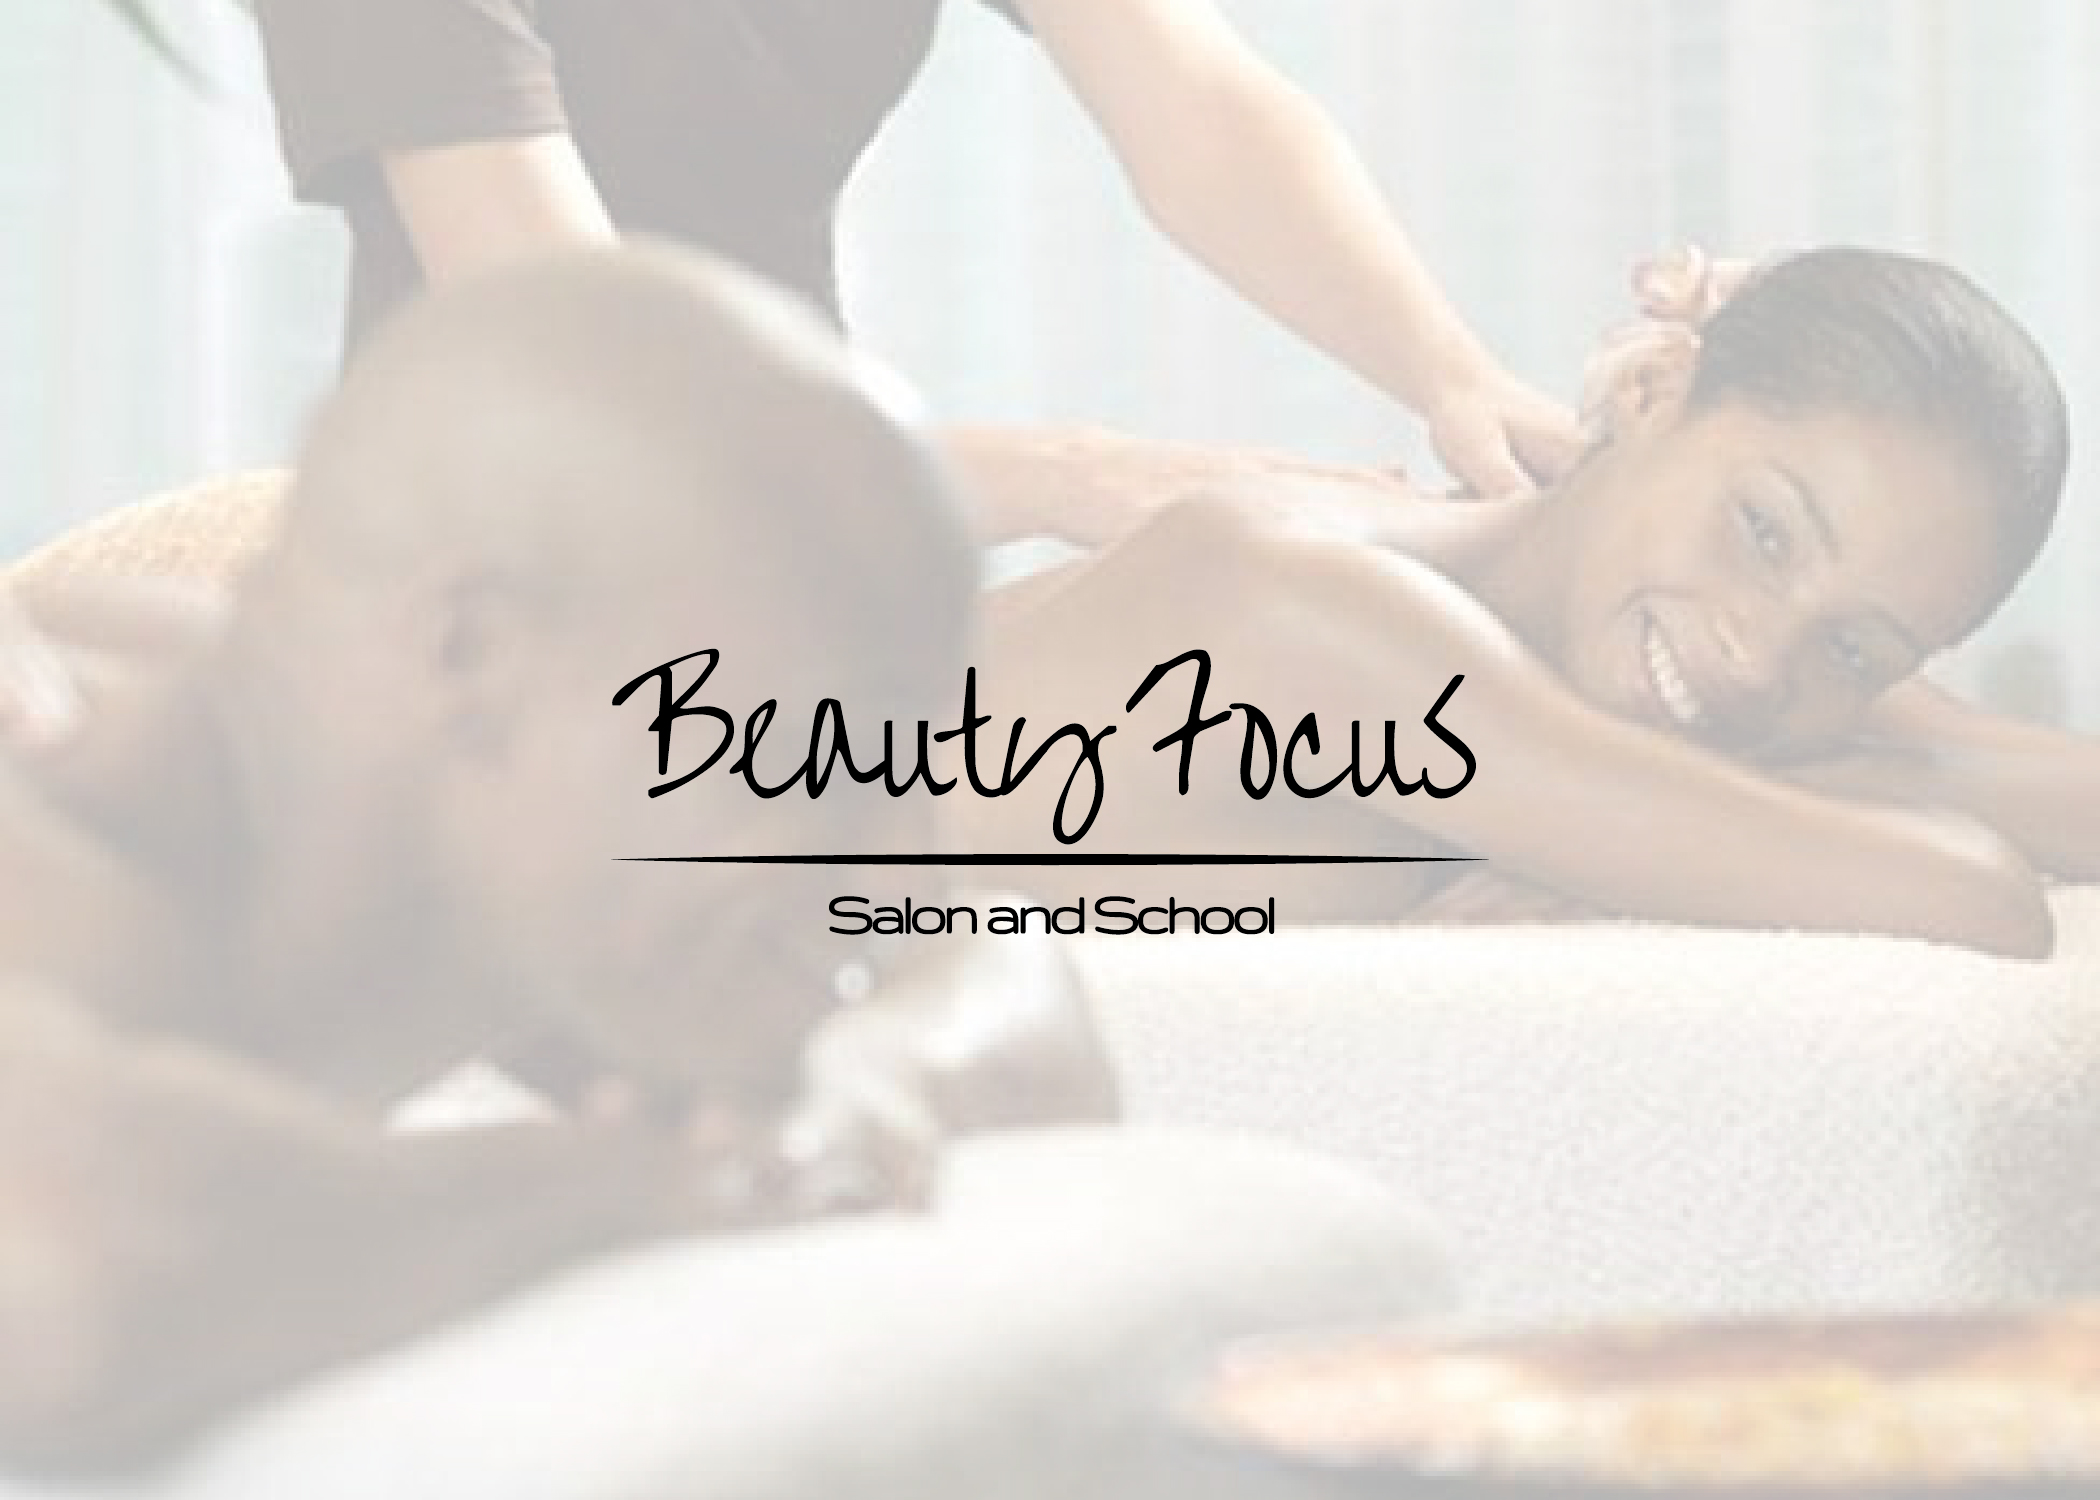 Beauty Focus Salon & School